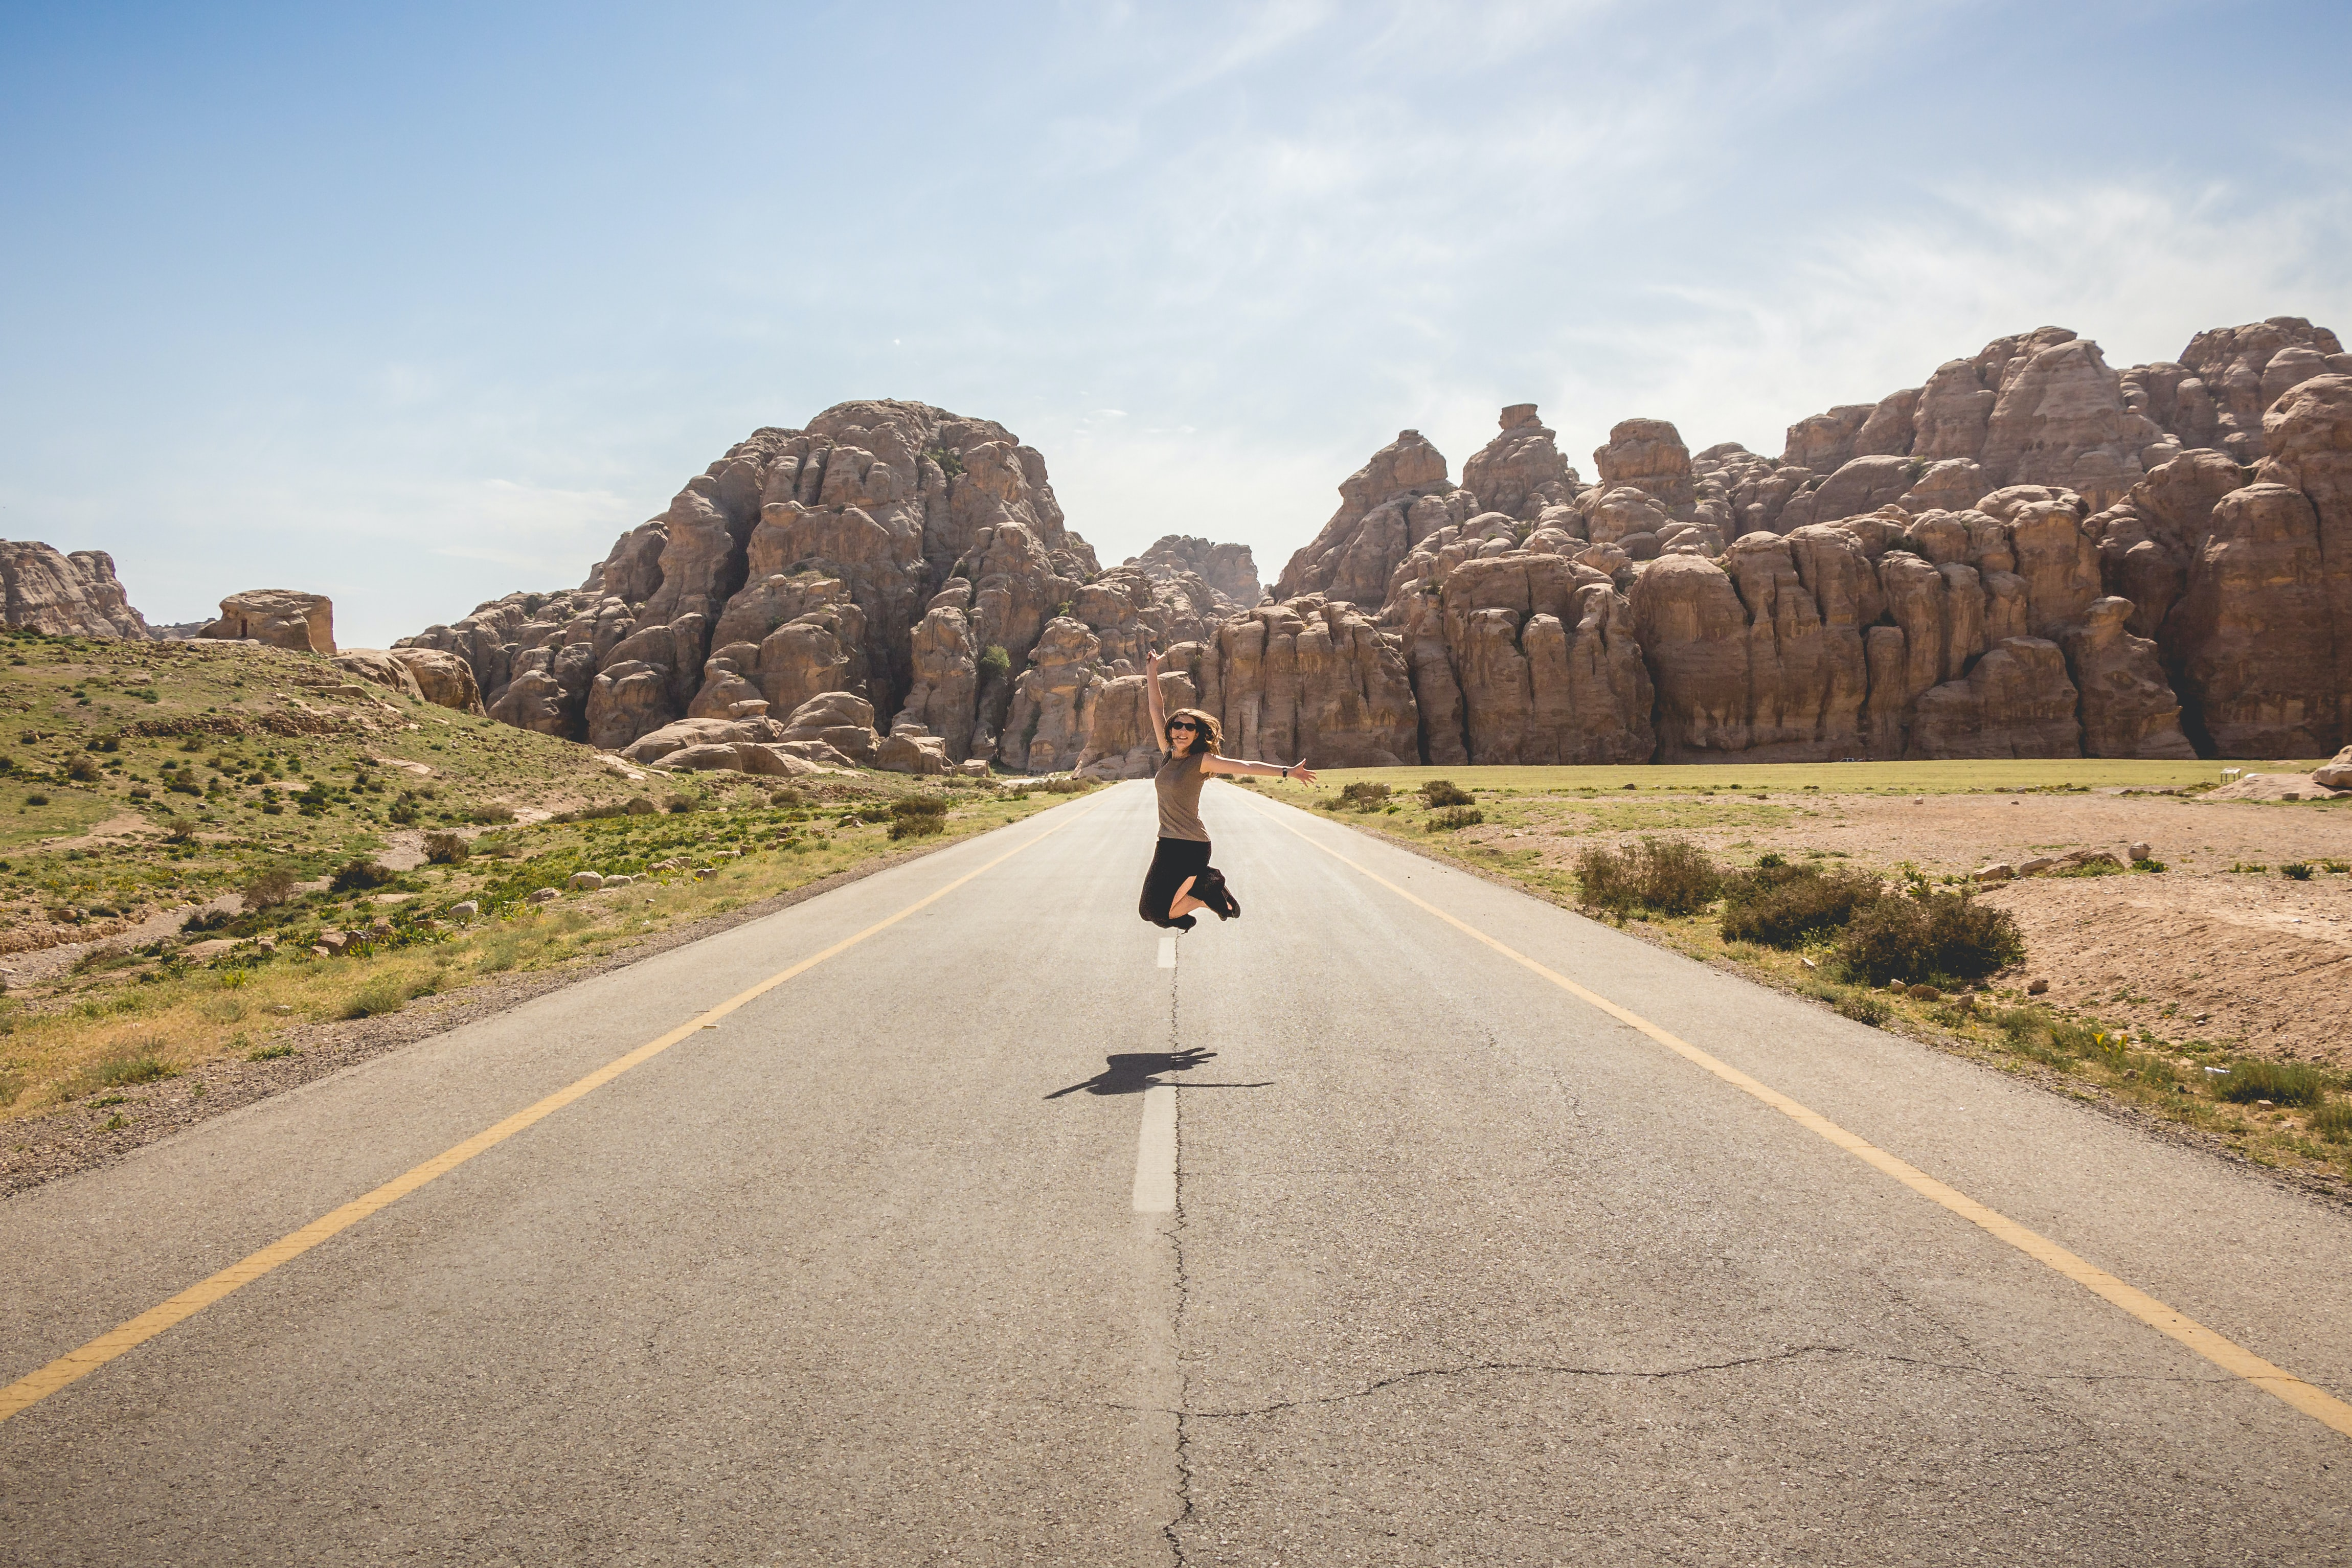 A woman in sunglasses jumps up in the middle of an empty road with rocky outcroppings in the background